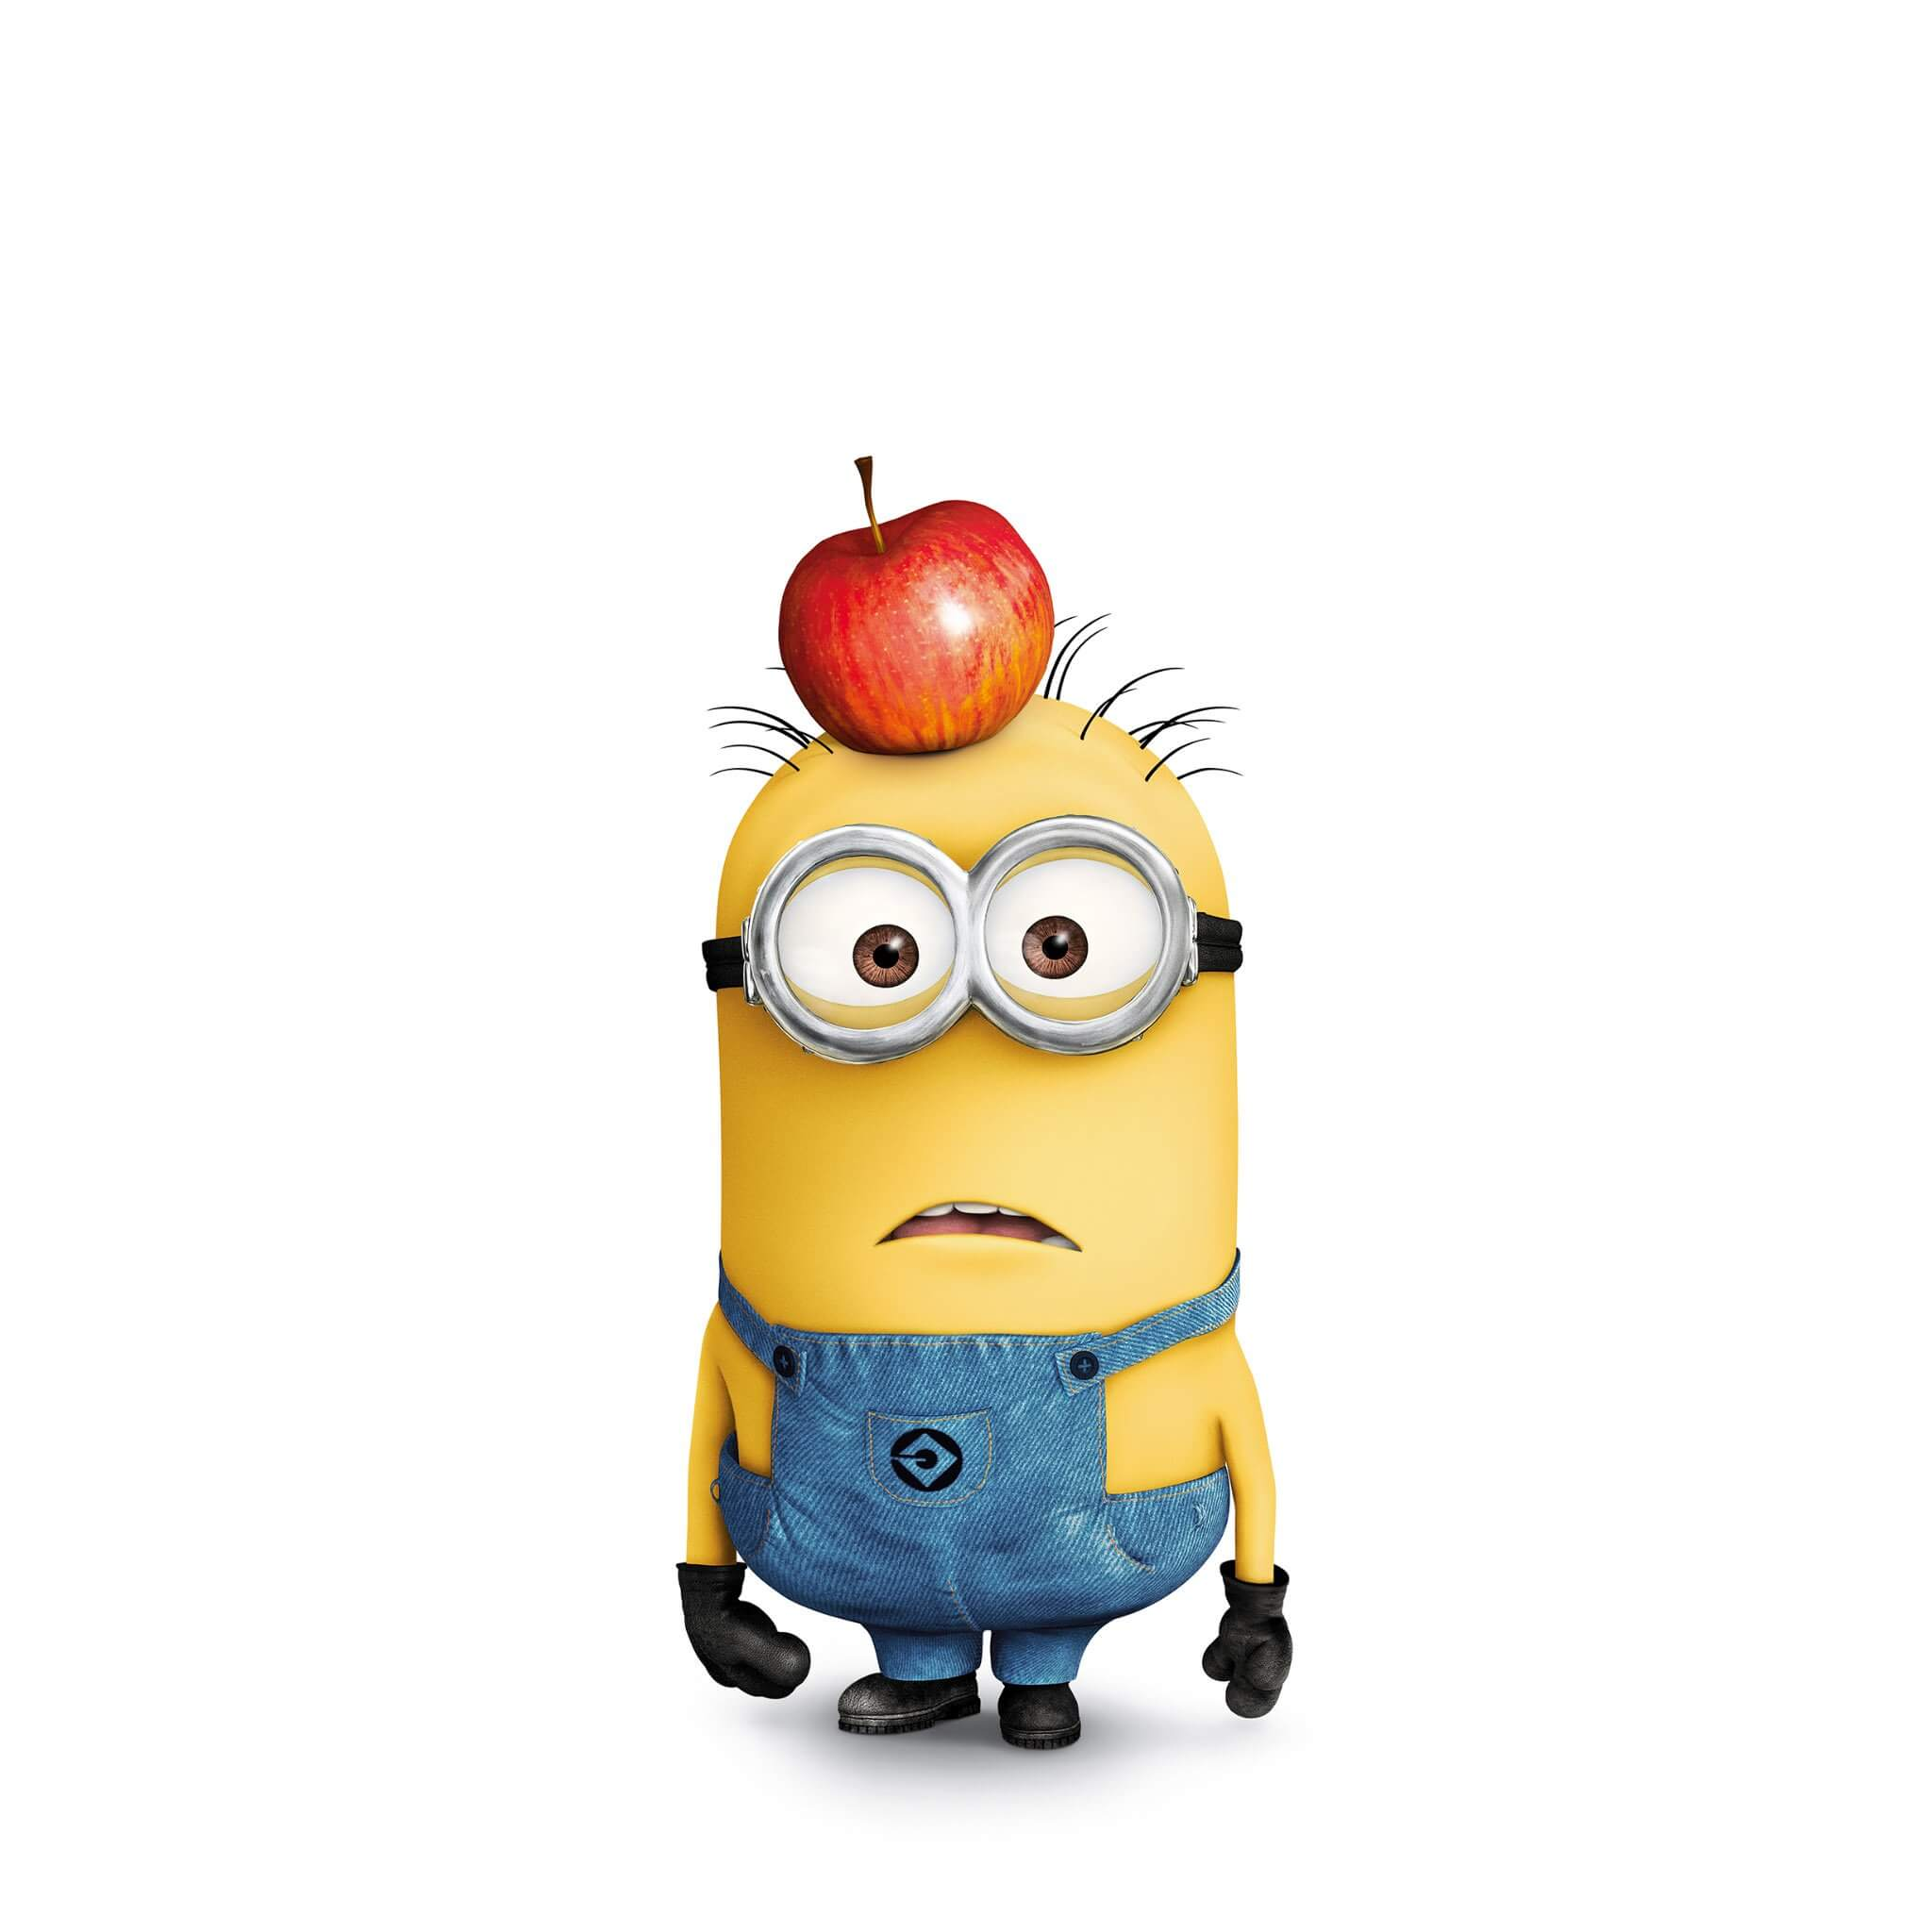 Create Your Own Iphone Wallpaper Online Download Minions Ipad Wallpaper Gallery